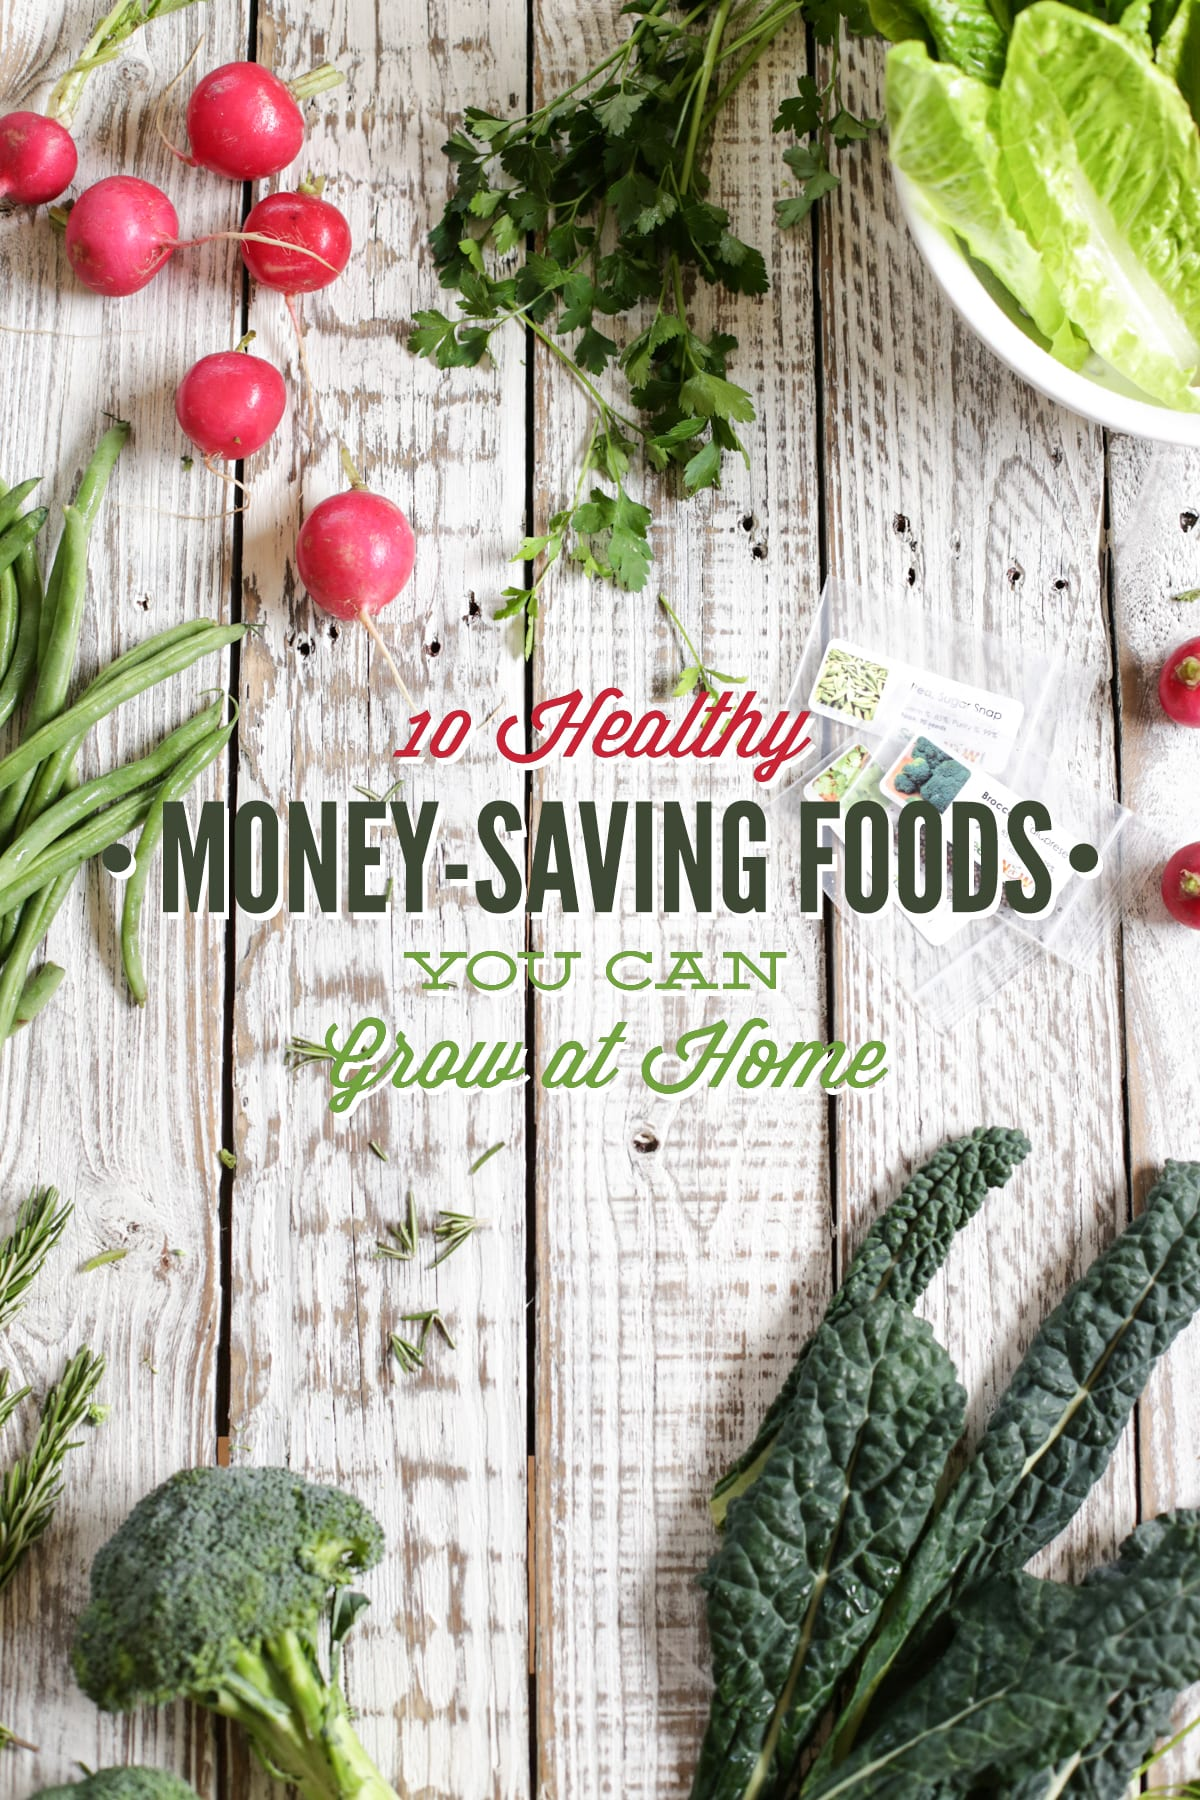 10 healthy money saving foods you can grow at home live simply - Money saving tips in gardening ...